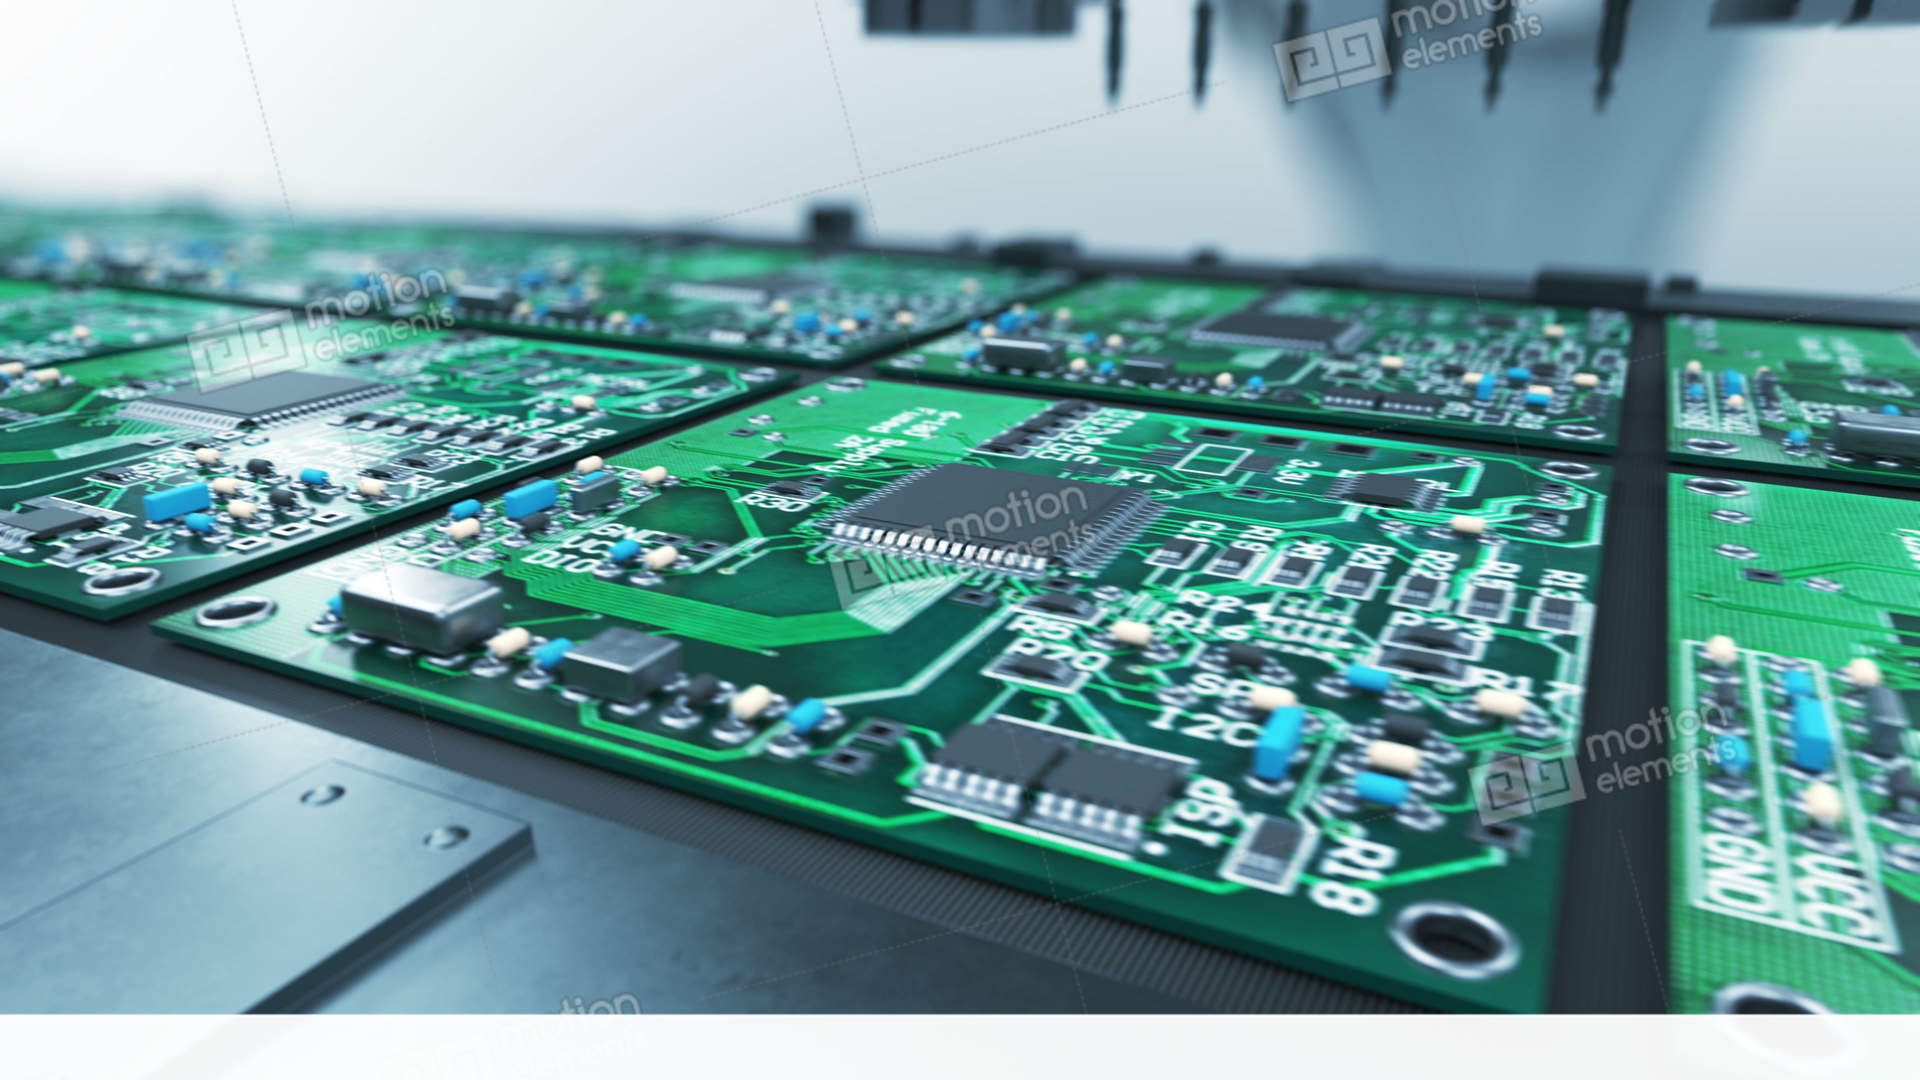 Beautiful Basic Electronic Components Software Help Circuit Board With Inside A Computer Stock Photo Picture Of Wall Decoration For Electronics Hobbiyest Process Robotic Arm Production Video Footage